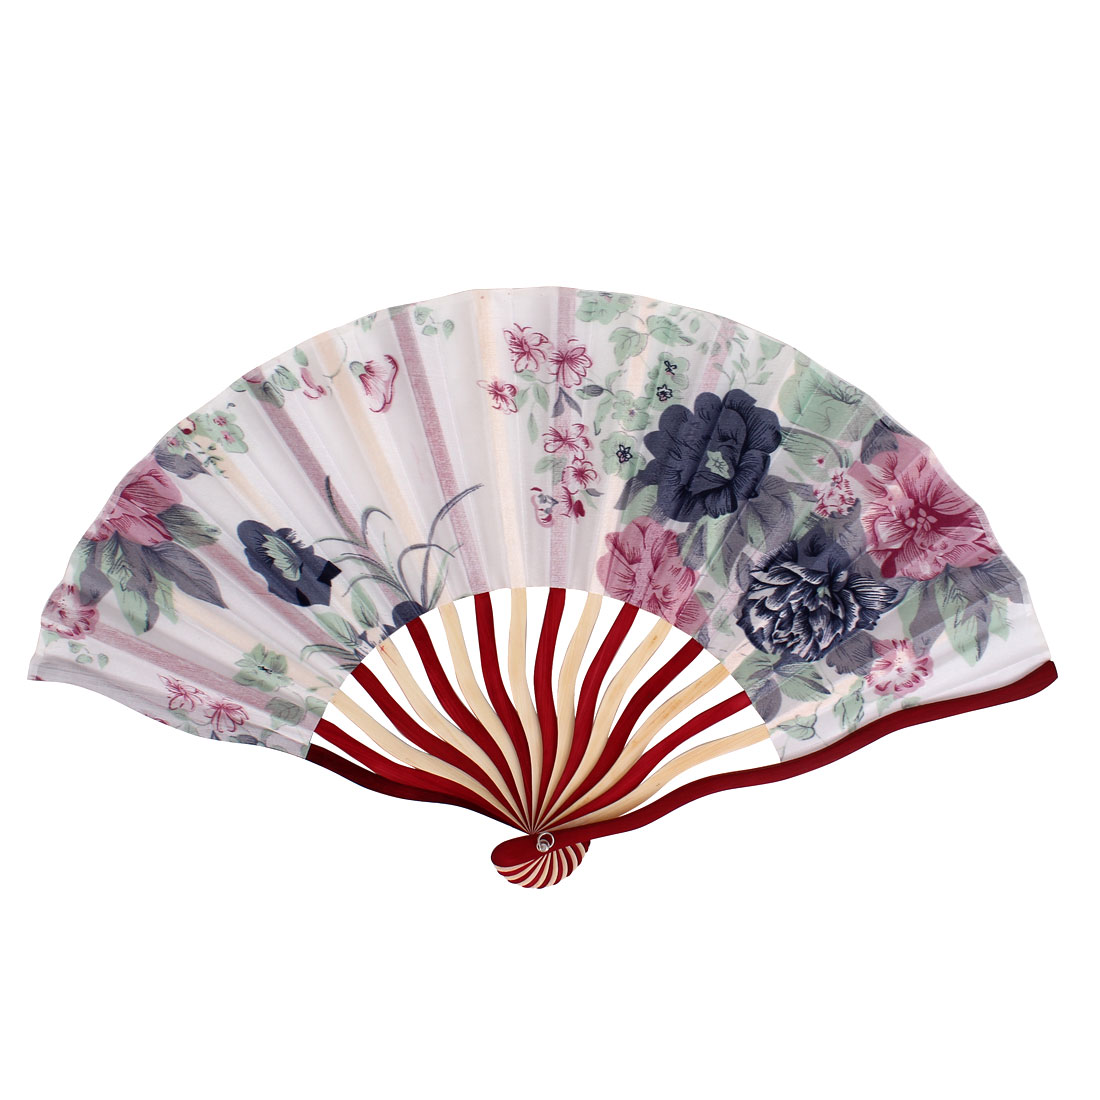 Chinese Tradition Blooming Peony Flower Print Fabric Cloth Ivory Red Wood Frame Handheld Foldable Hand Fan